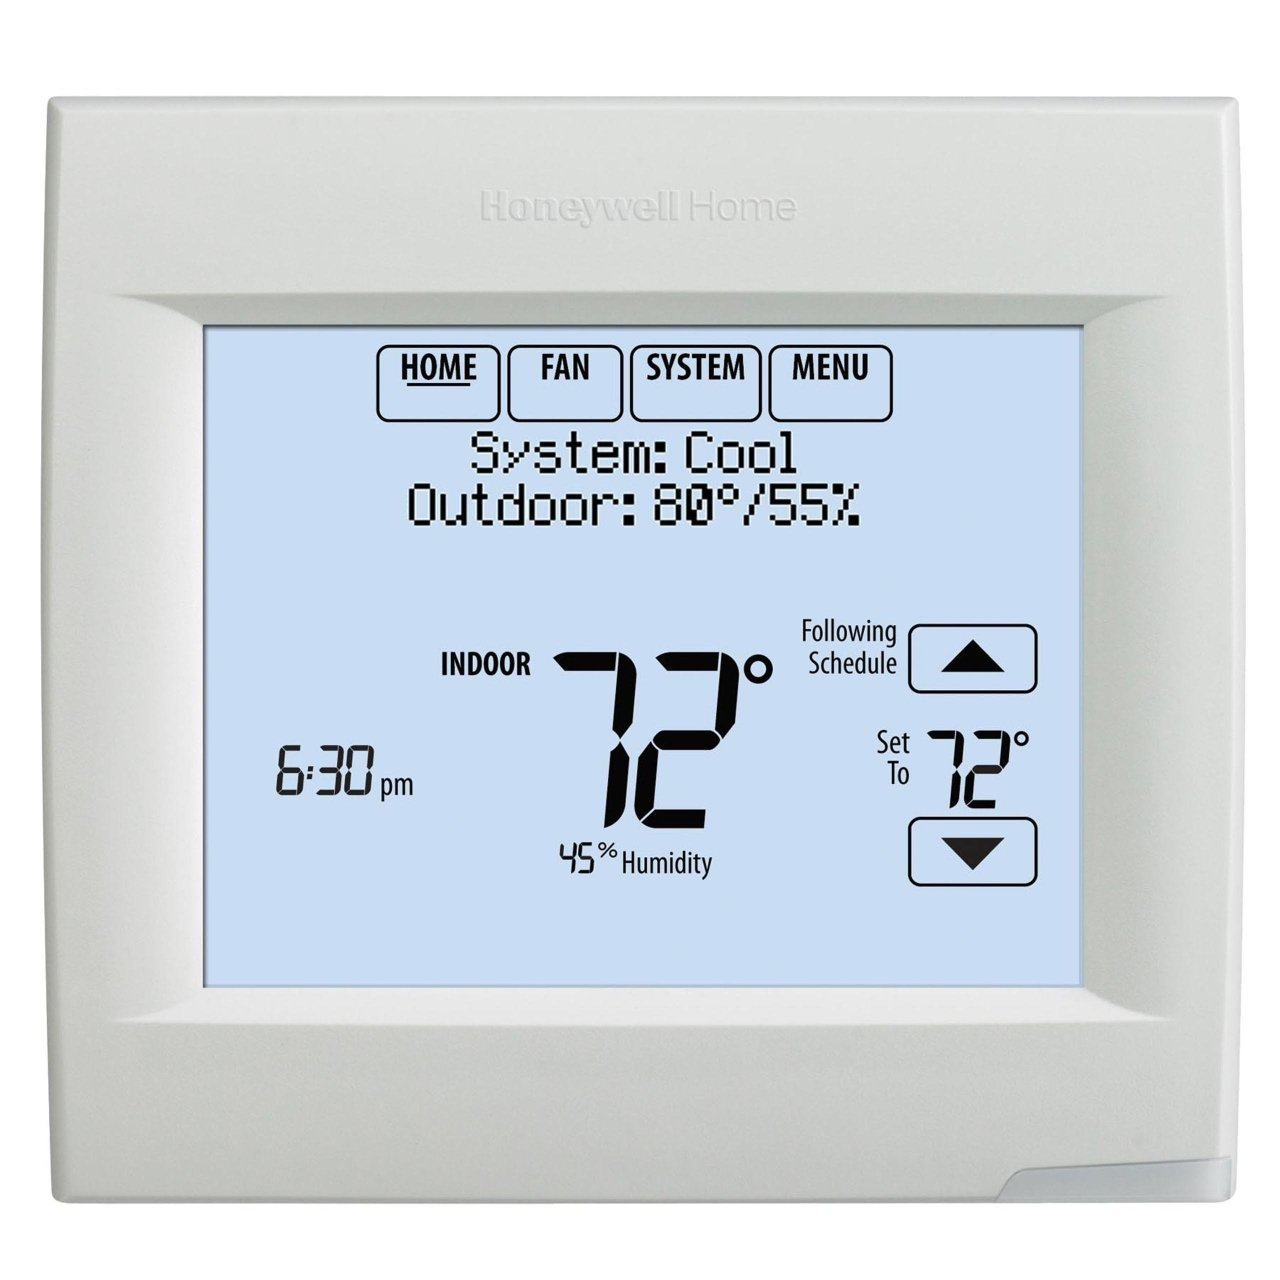 Honeywell Home VisionPRO Wi-Fi 7-Day Programmable Thermostat